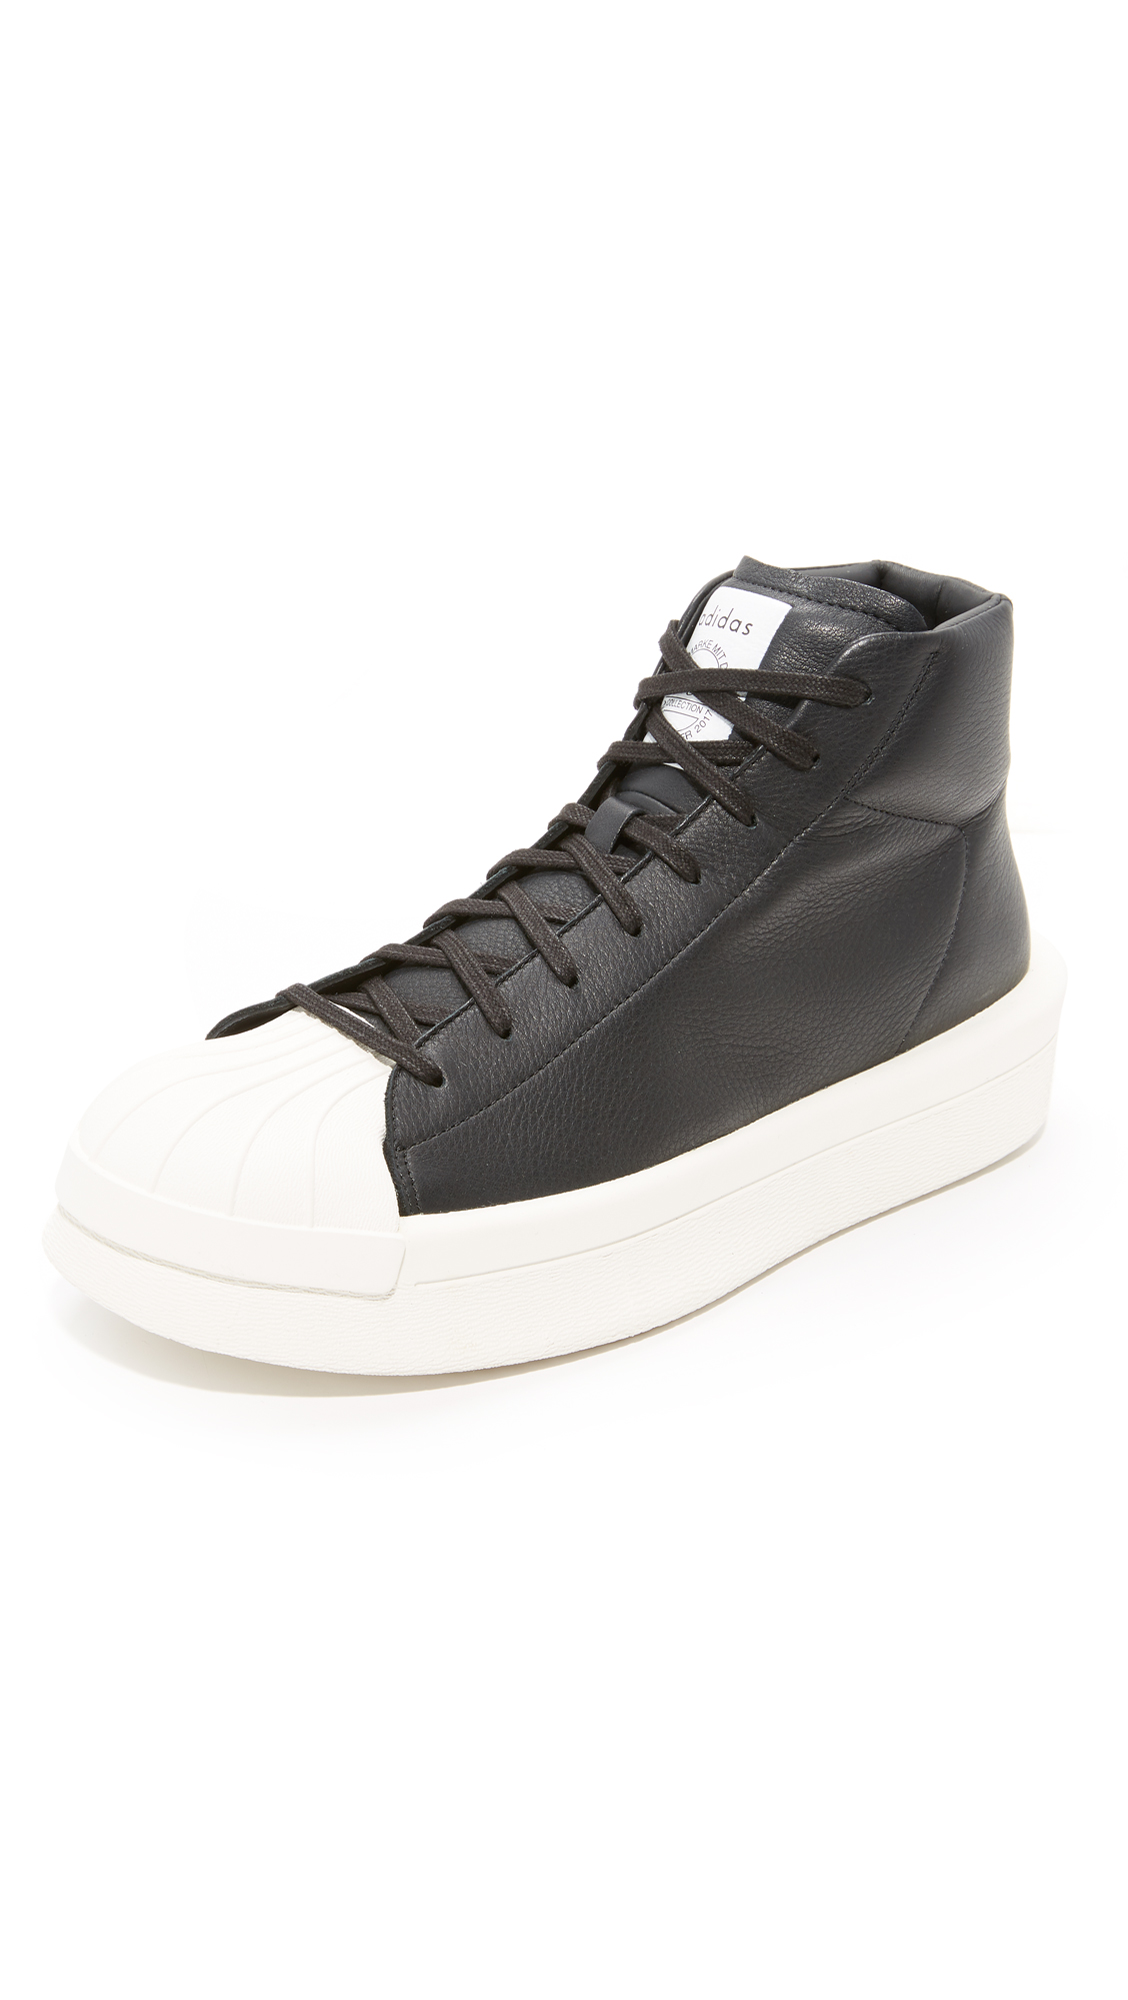 lace-up platform hi tops - Black Rick Owens x adidas 3mU8DD